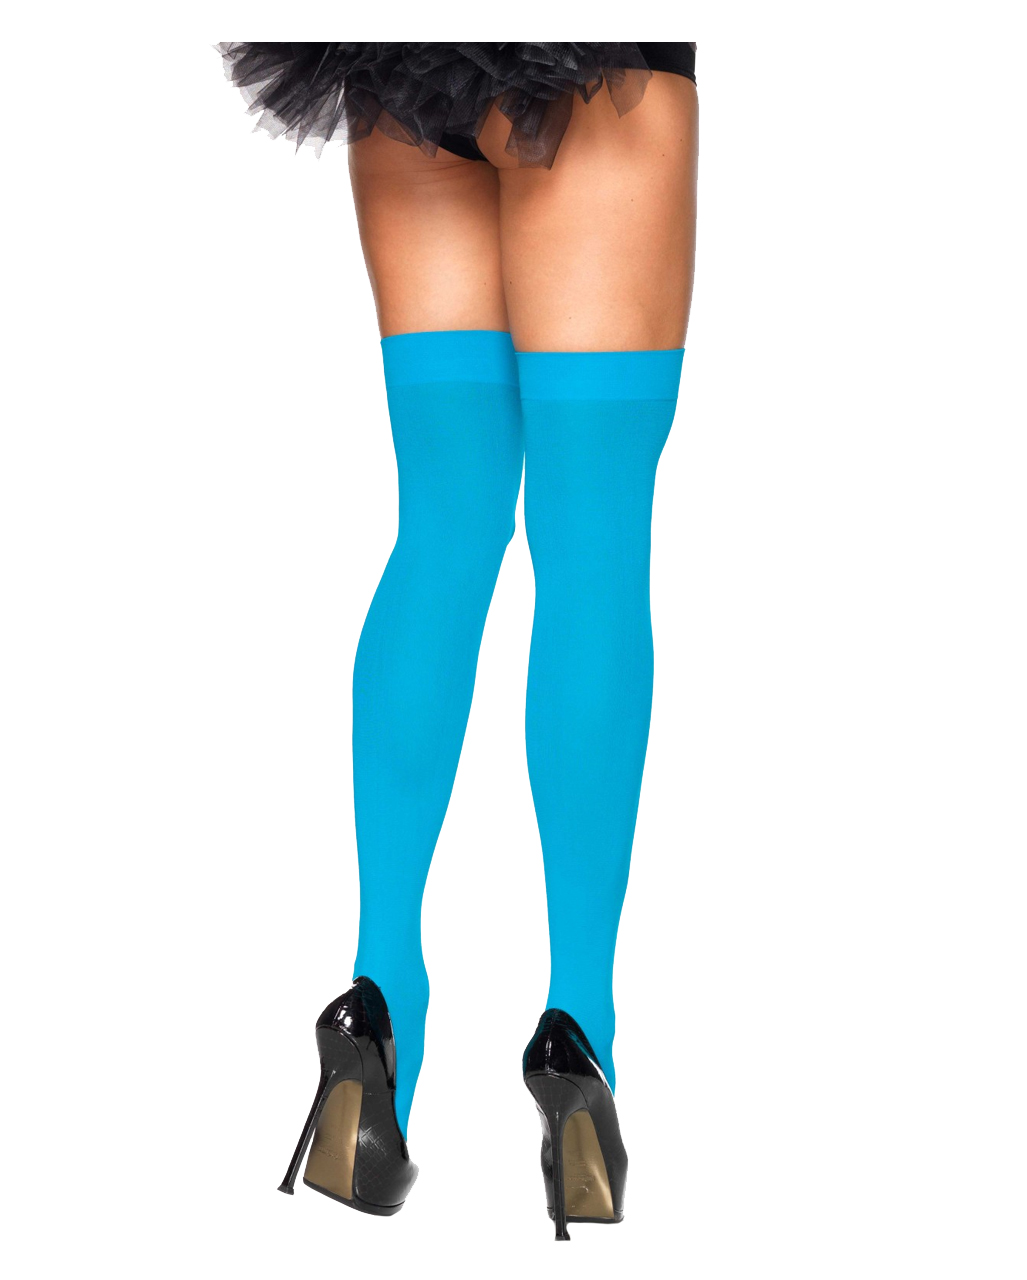 6552ad33bd2 Neon Blue 80s Overknees as costume accessories